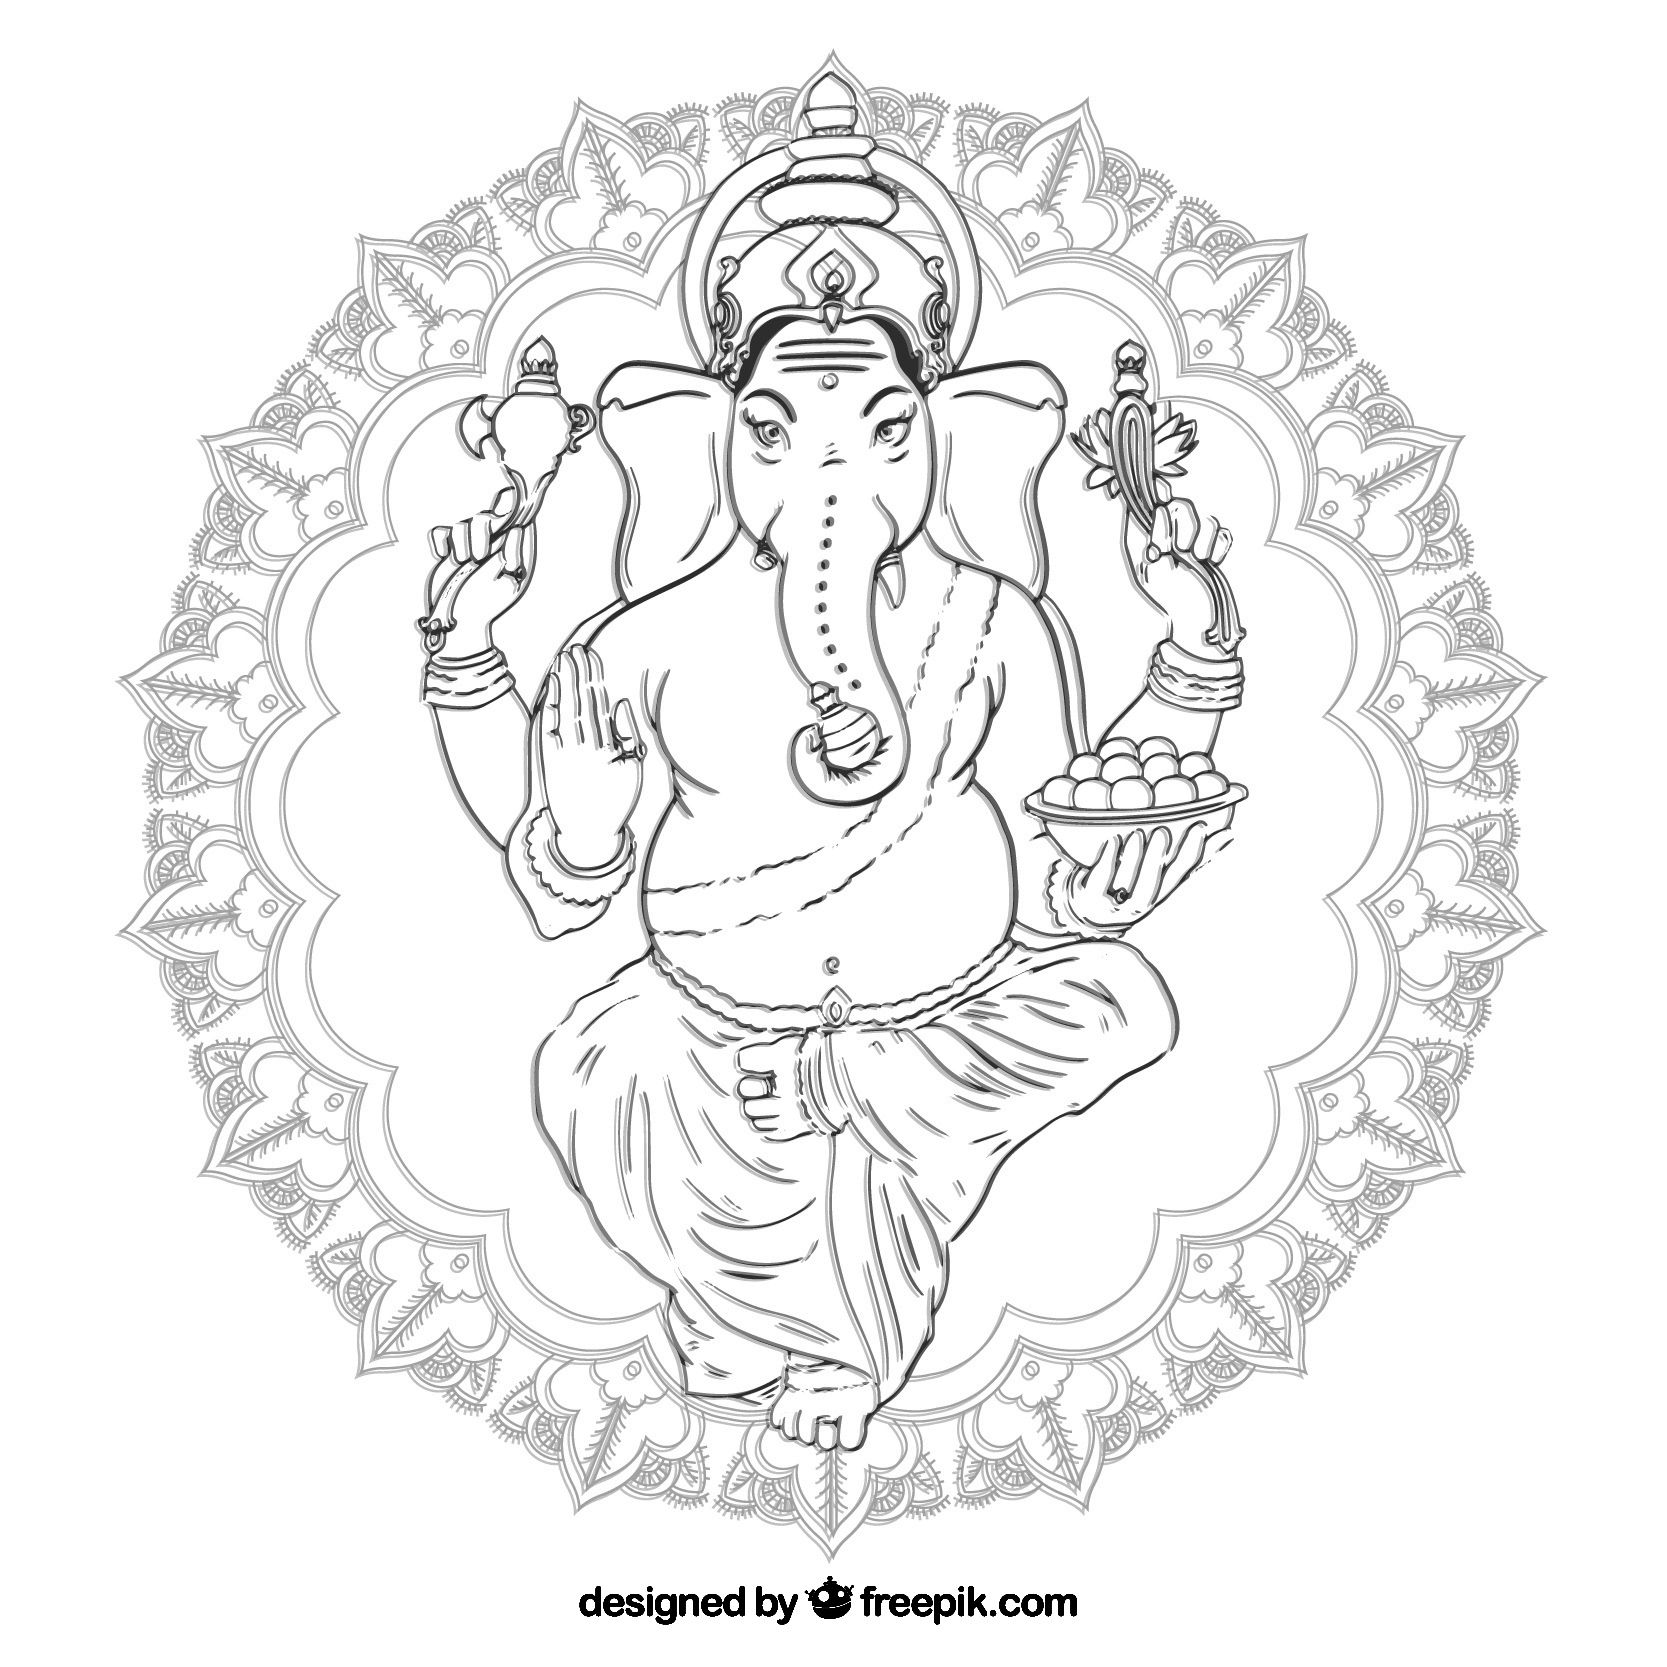 Mandala Monday-Free Ganesha Mandala to Color from Freepik